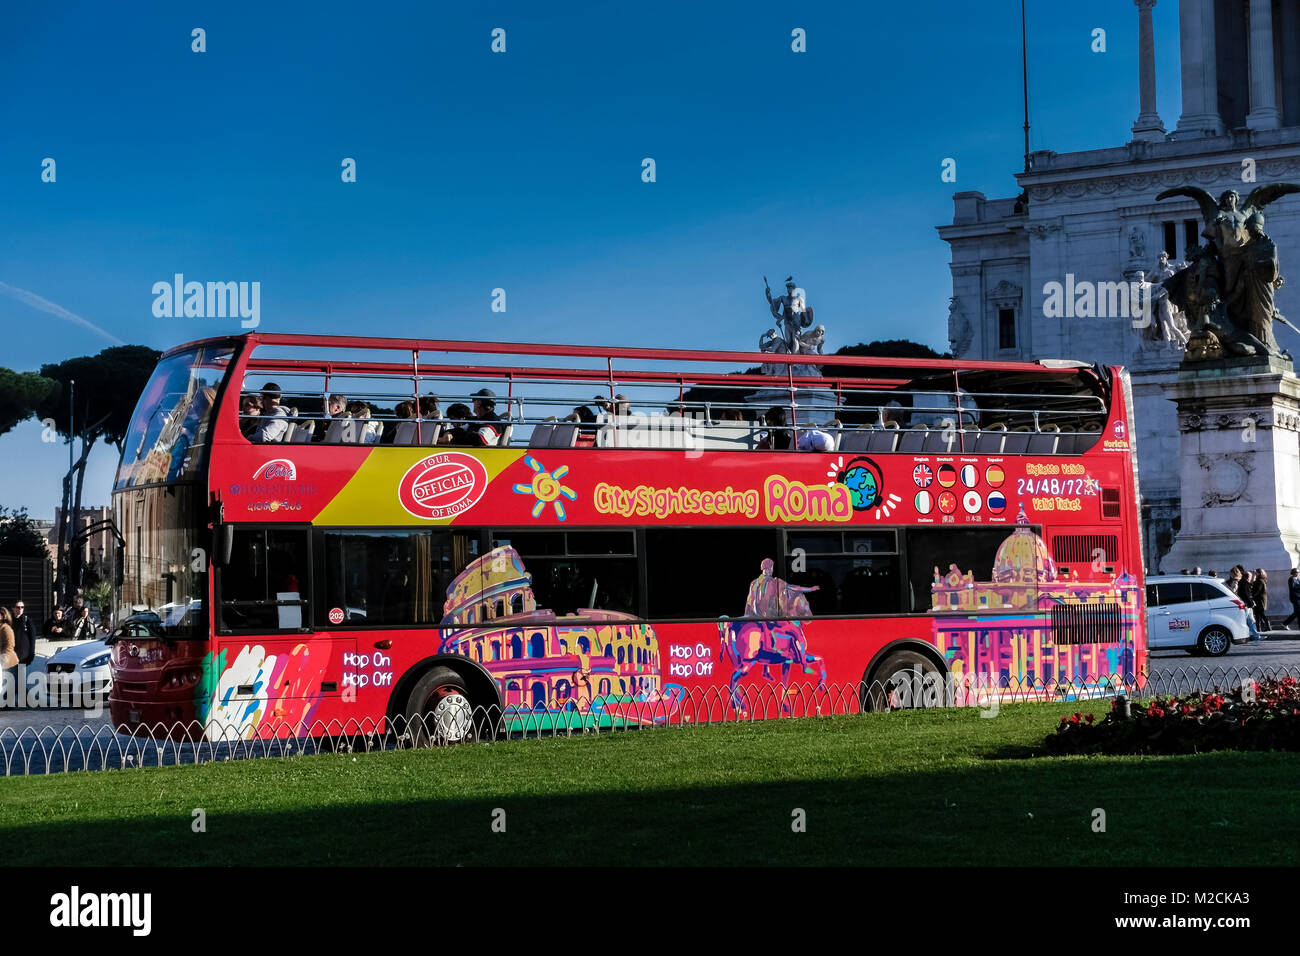 Tourist sightseeing, hop on hop off, red double decker bus, passing through Venice Square. Rome, Italy, Europe. - Stock Image